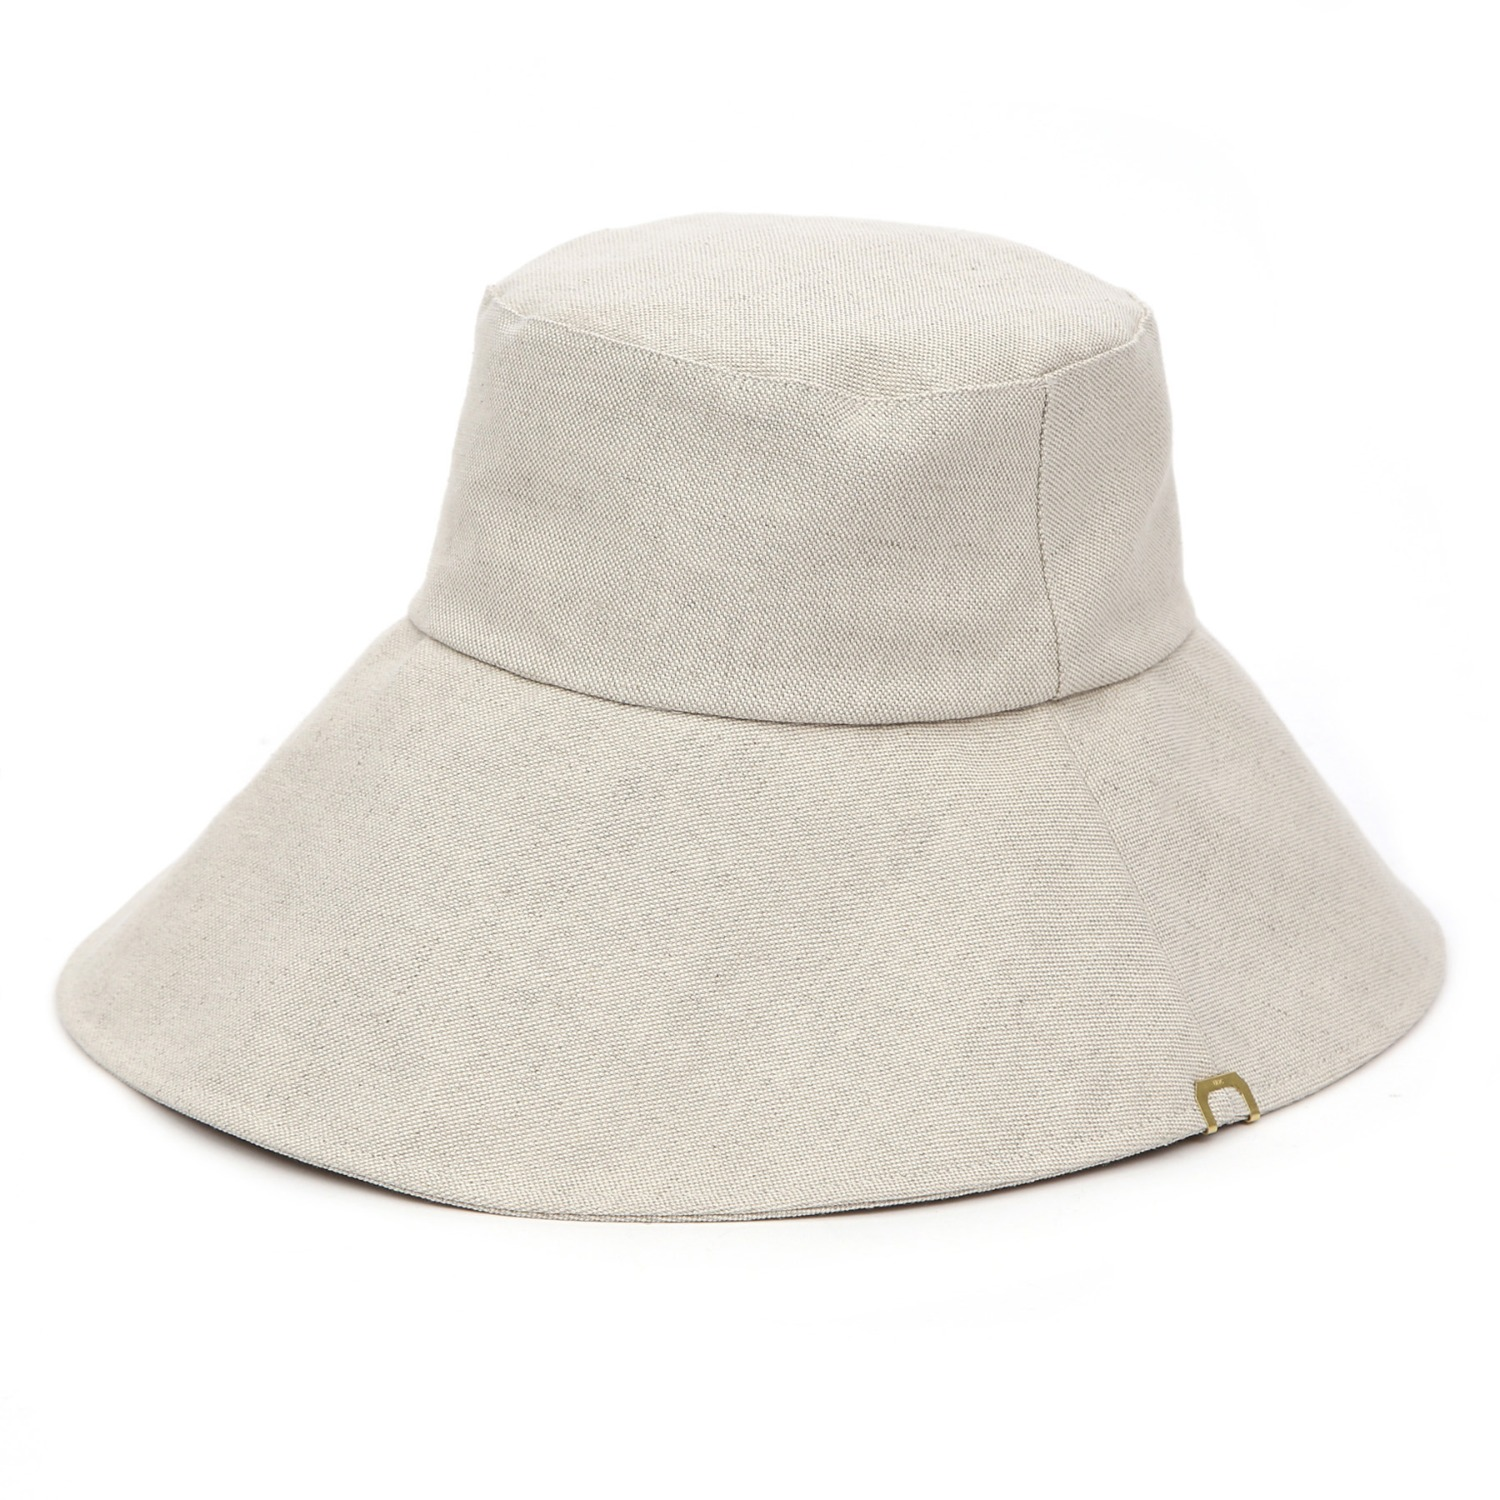 WIDE BUCKET / BIG EYE LINEN / SAND BEIGE